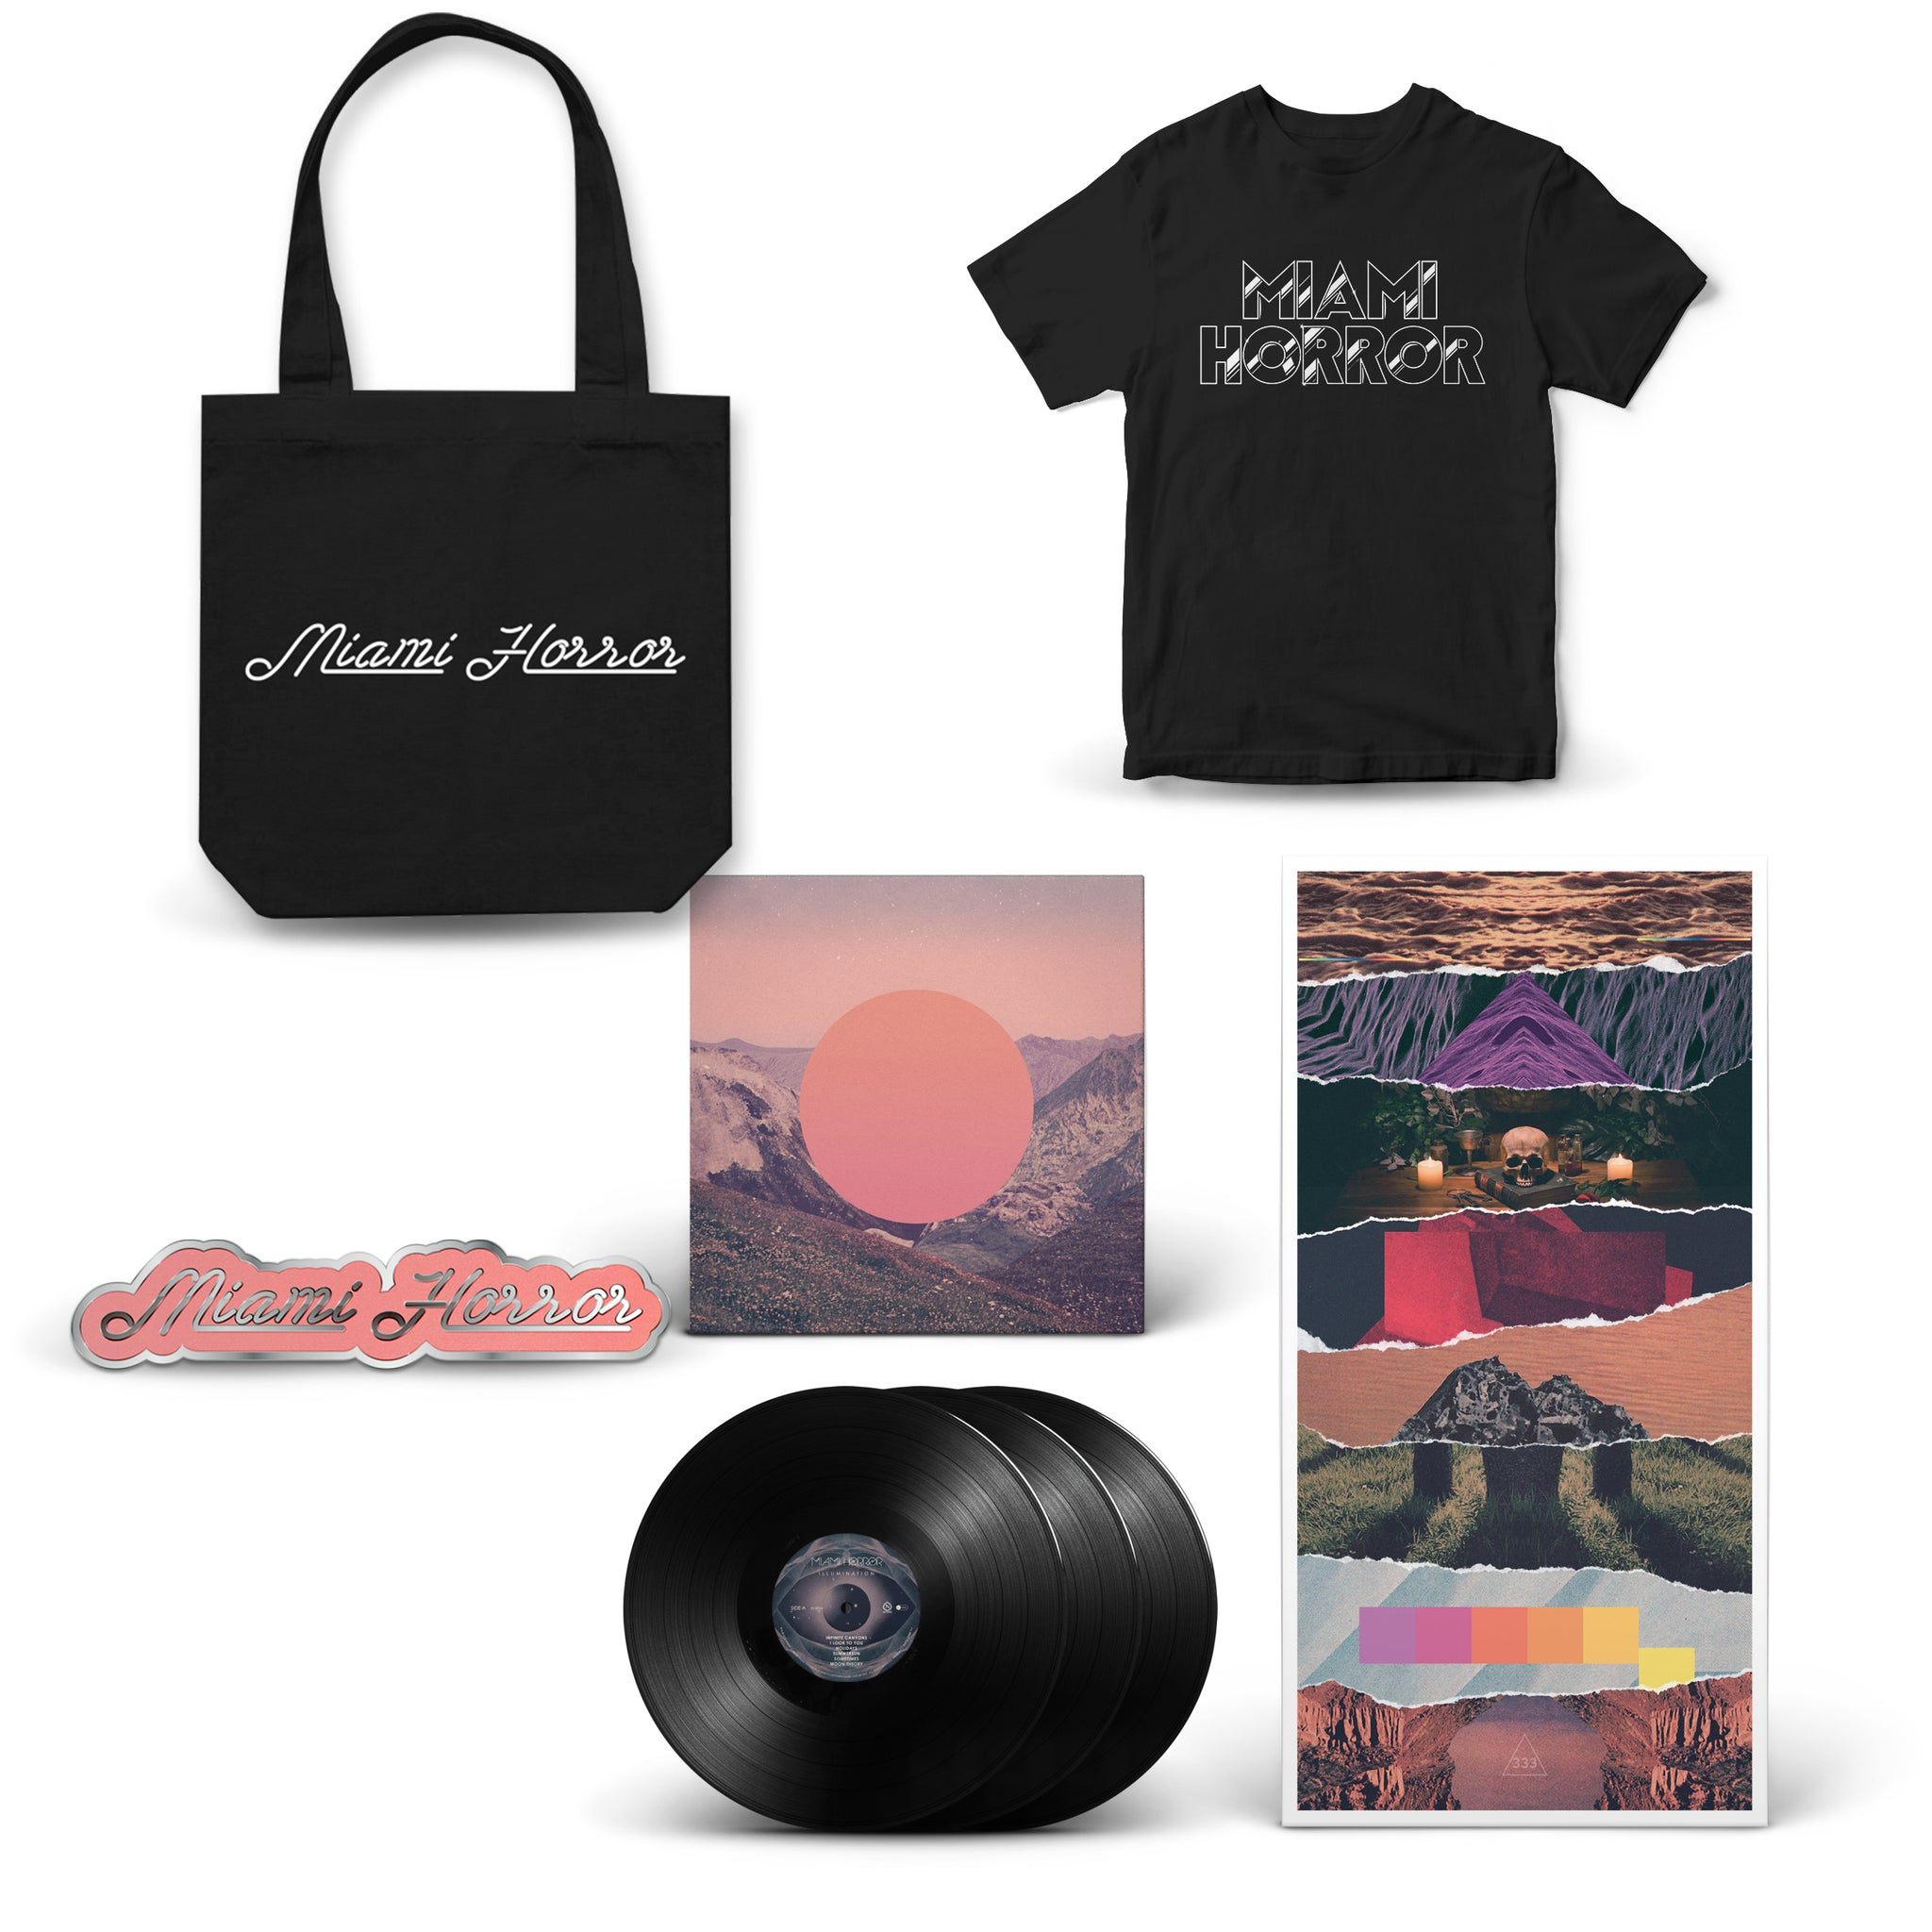 Illumination - 10 Anniversary Edition Vinyl, T-Shirt, Tote Bag, and Pin Bundle